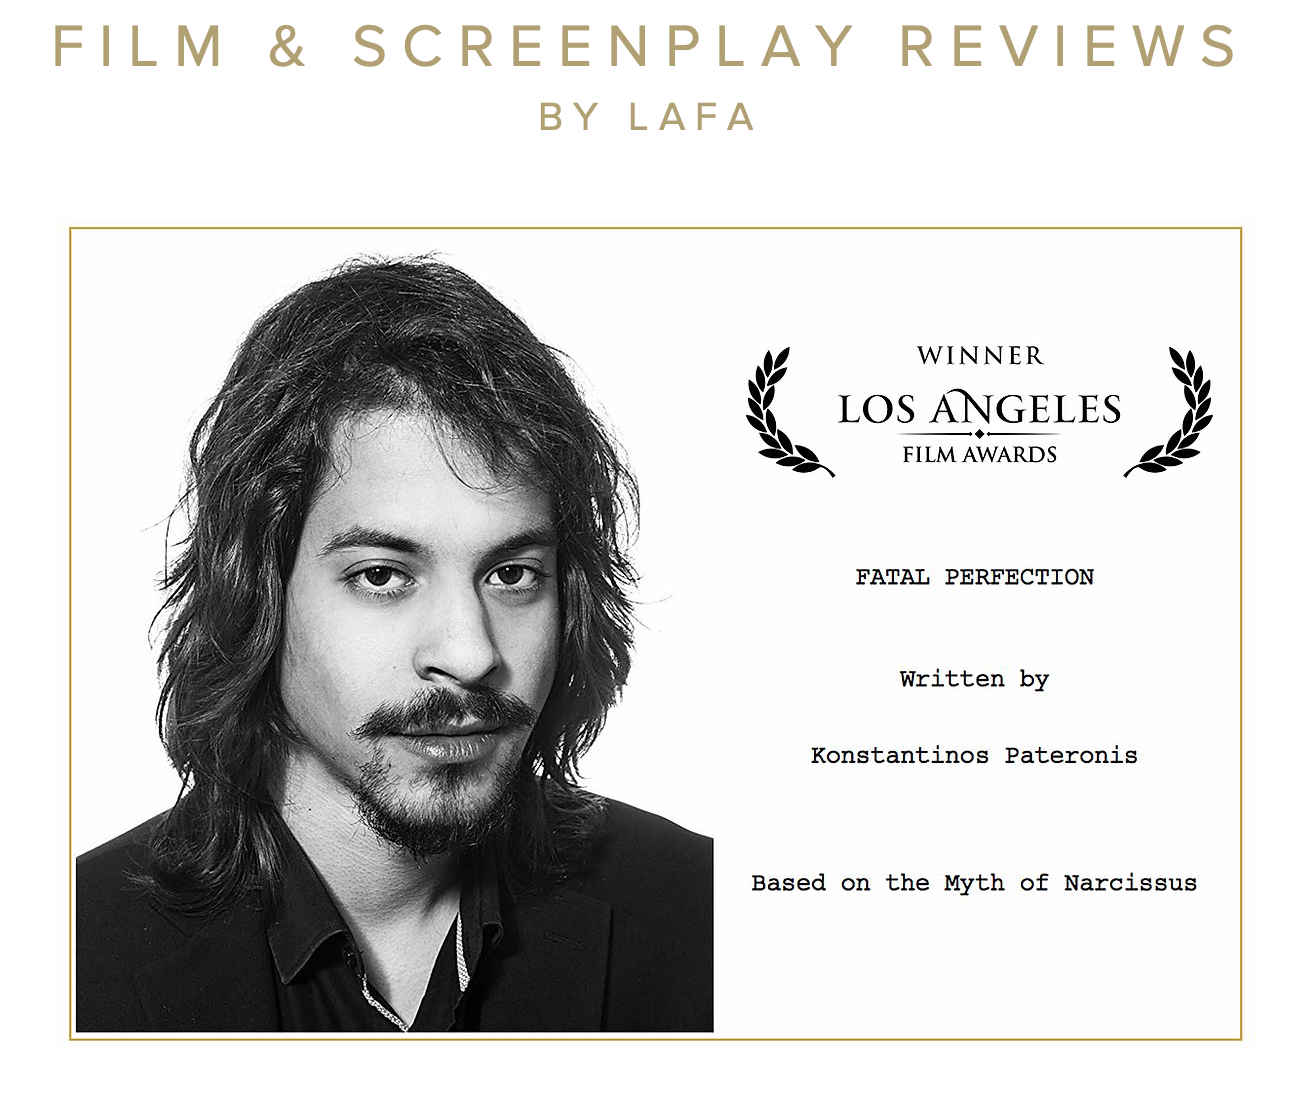 Los Angeles Film Awards Screenplay Review - Fatal Perfection